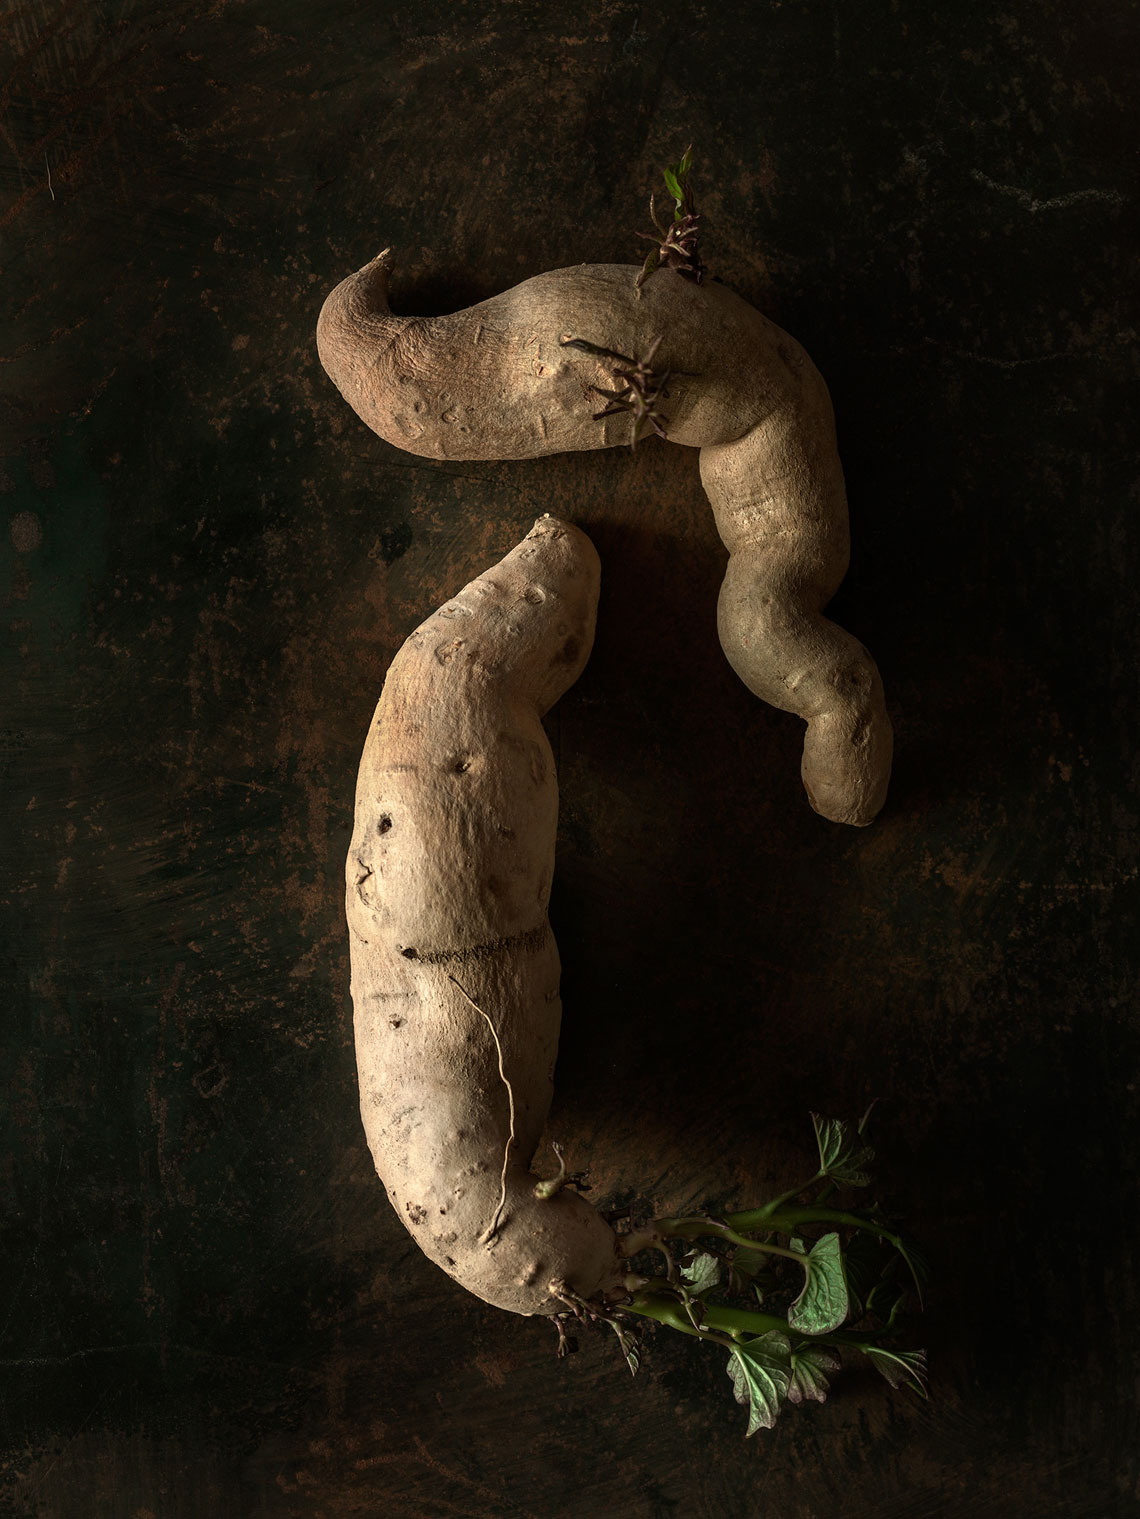 Roots_Series-4-small-potatoes-29848-as-Smart-Object-1